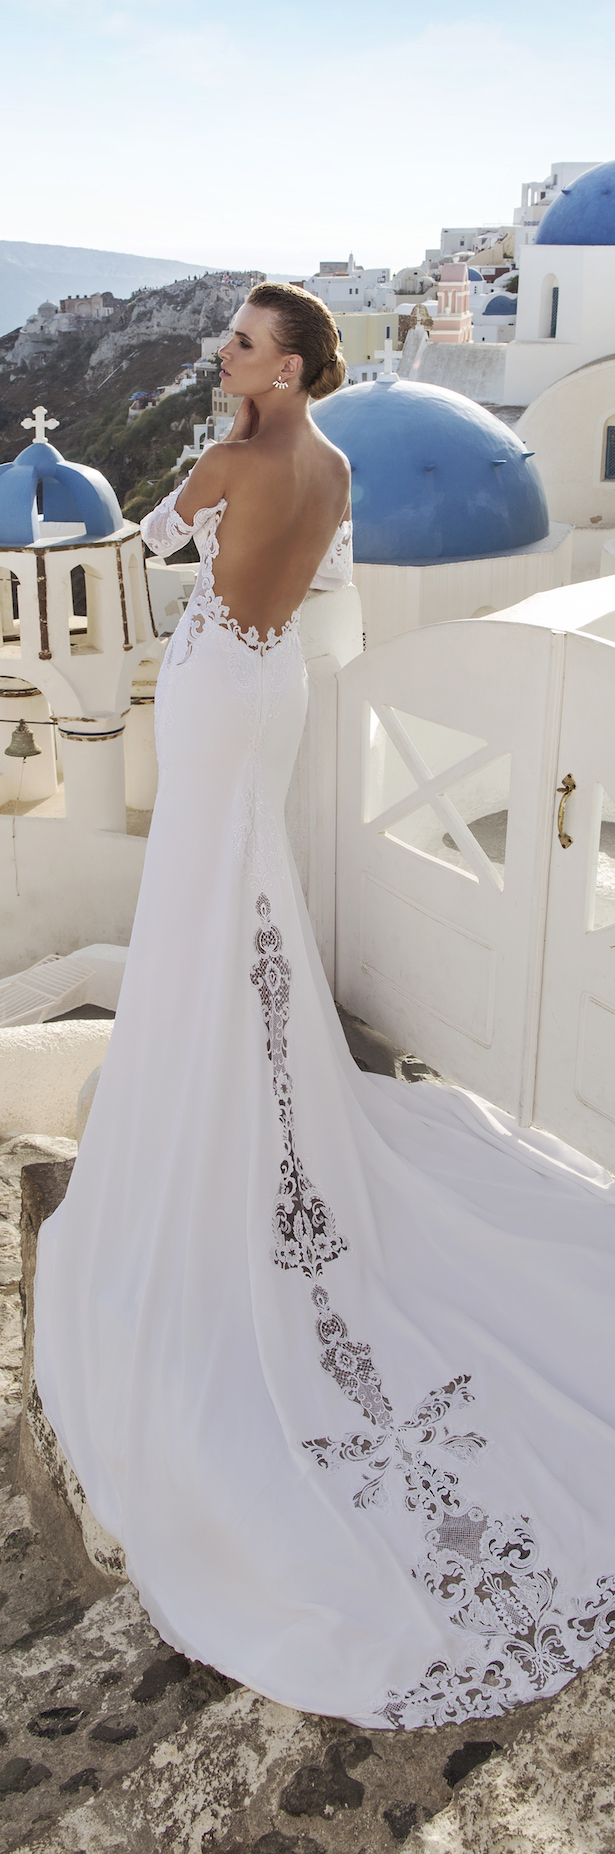 Tropical Island Wedding Dresses